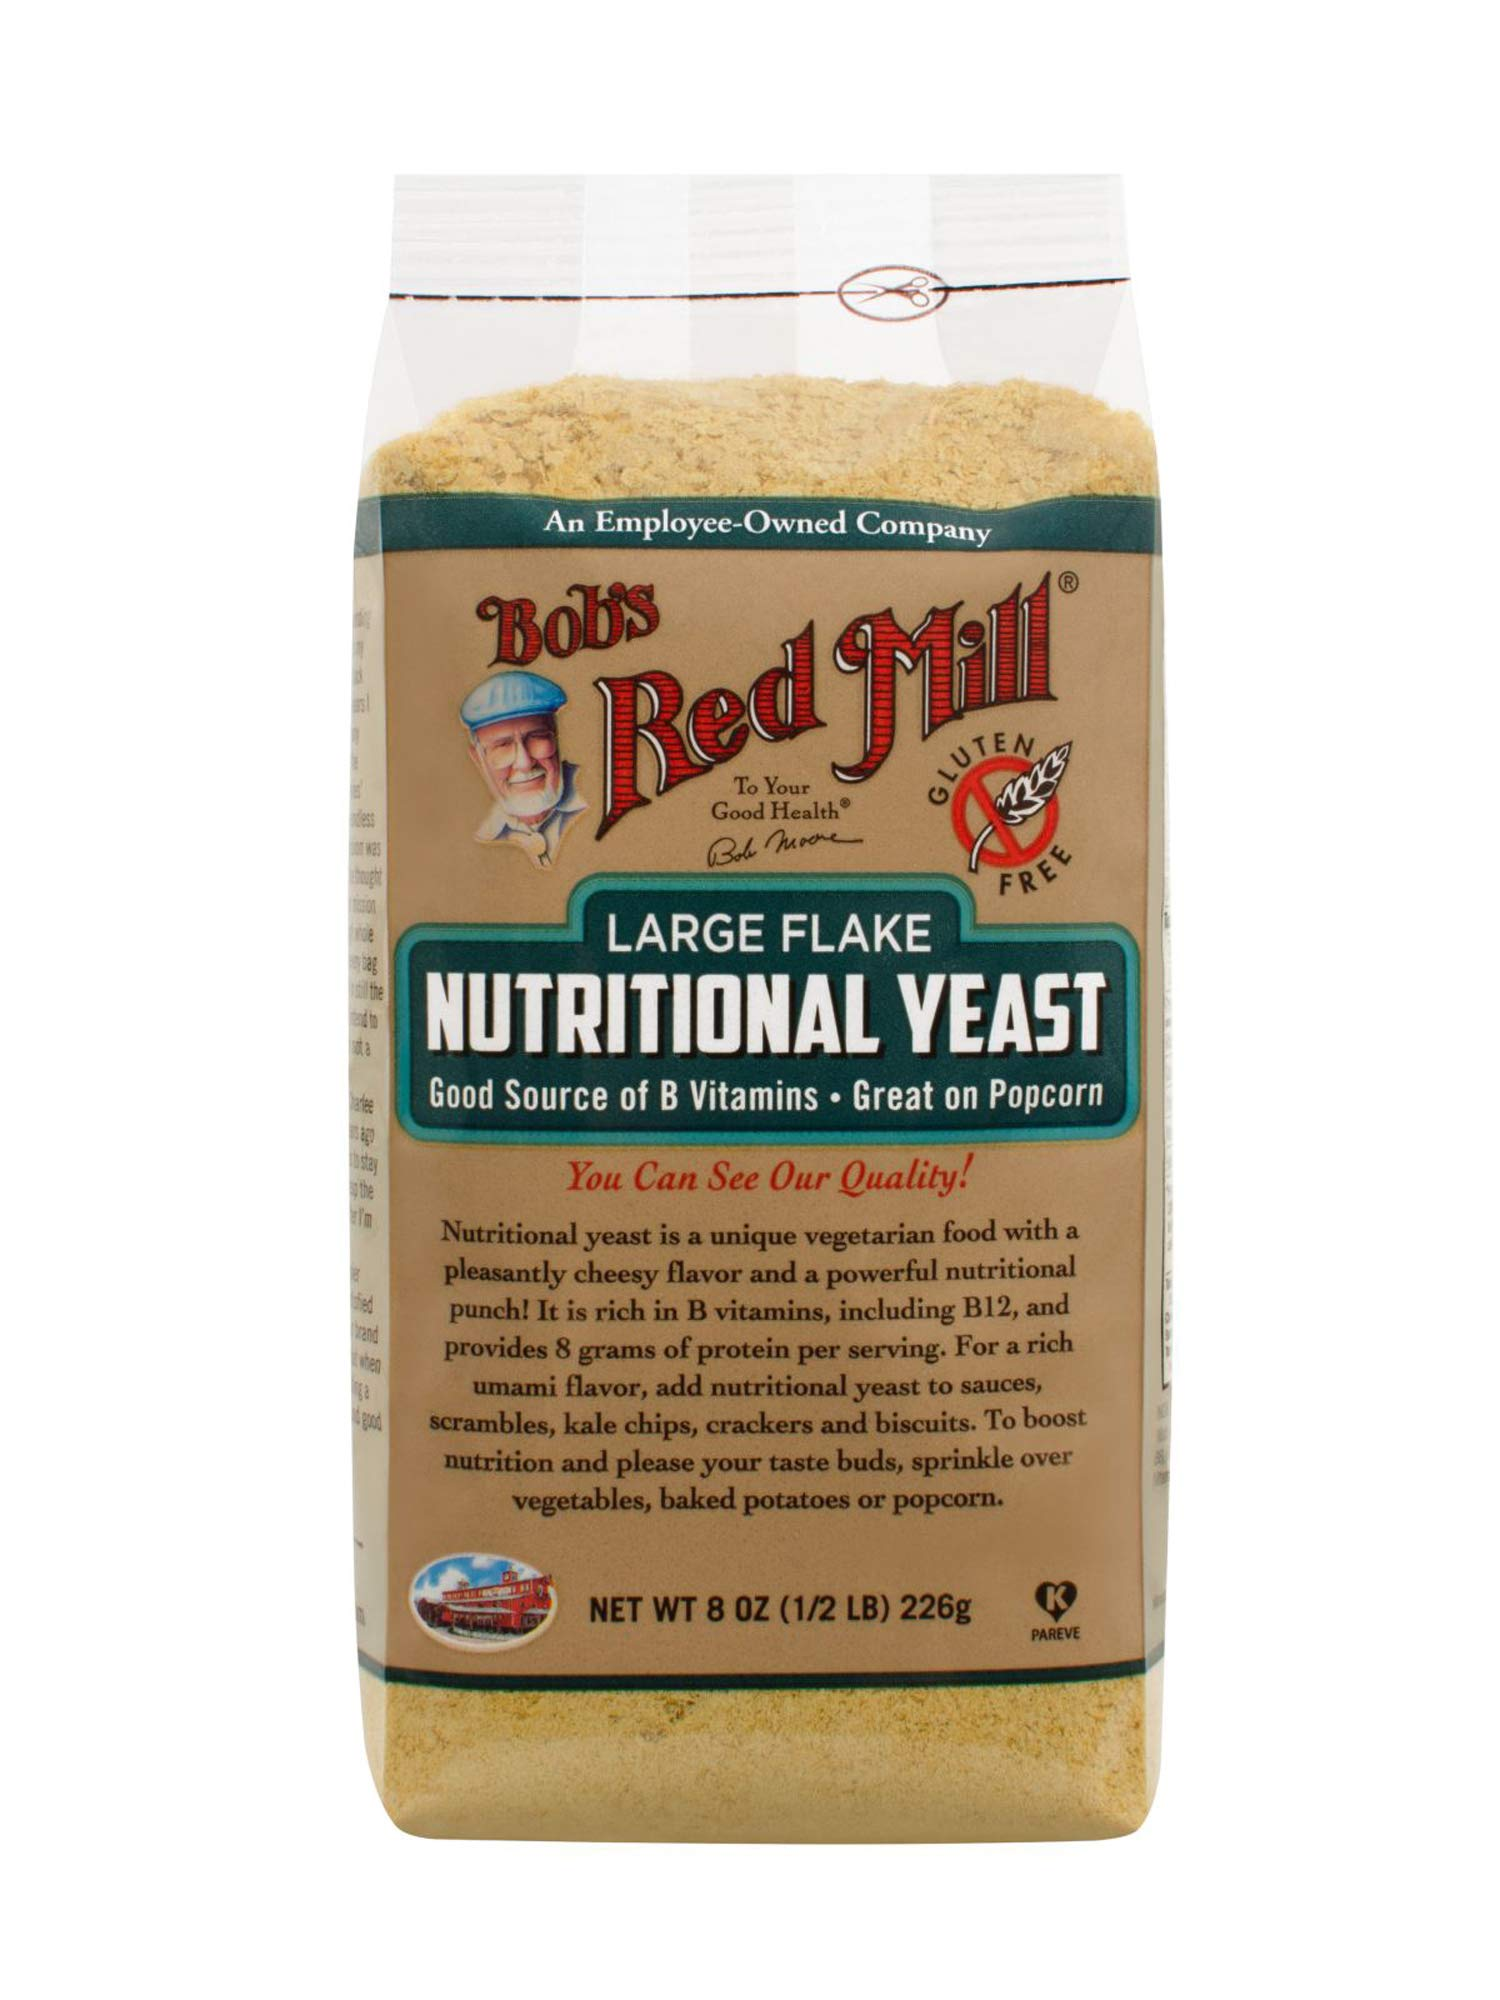 Bob's Red Mill Gluten Free Large Flake Nutritional Yeast, 8 Oz (4 Pack) by Bob's Red Mill